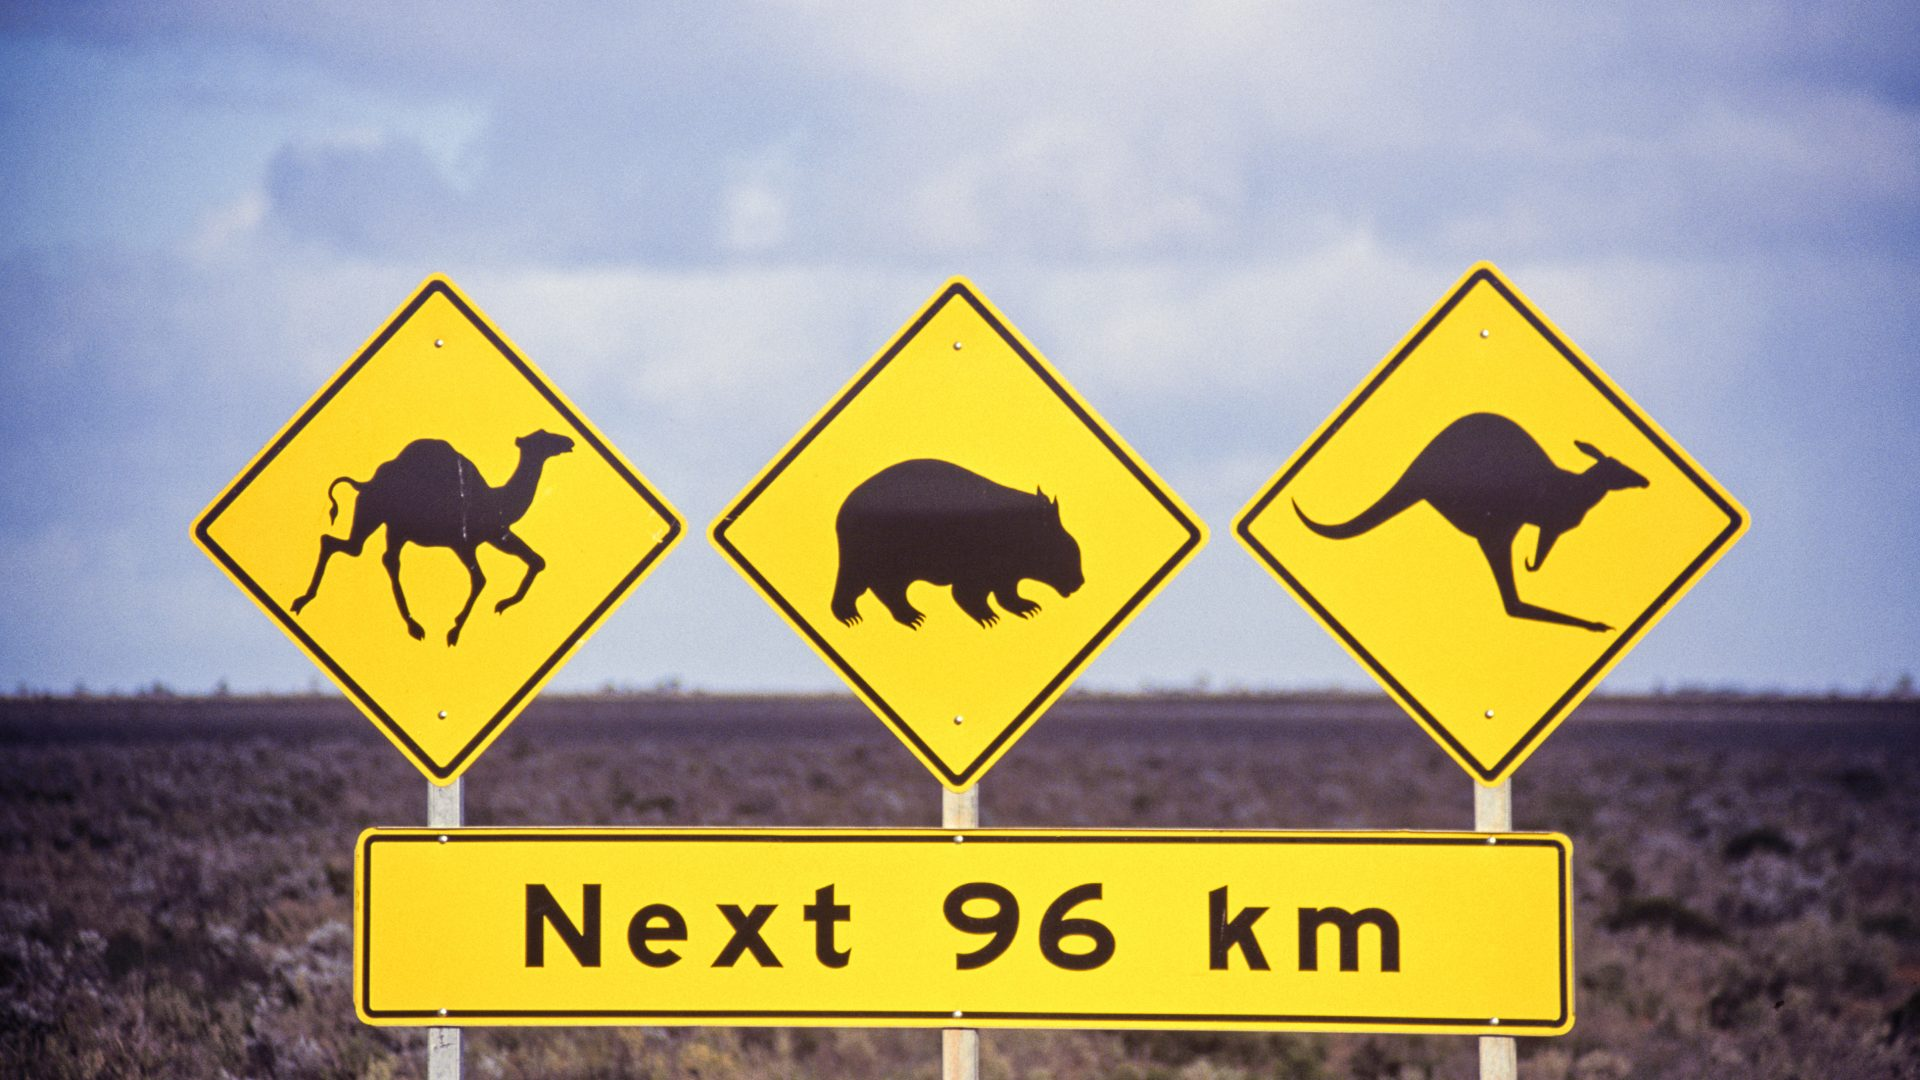 A sign in outback Australia tells drivers to be on the look-out for camels, wombats and kangaroos.